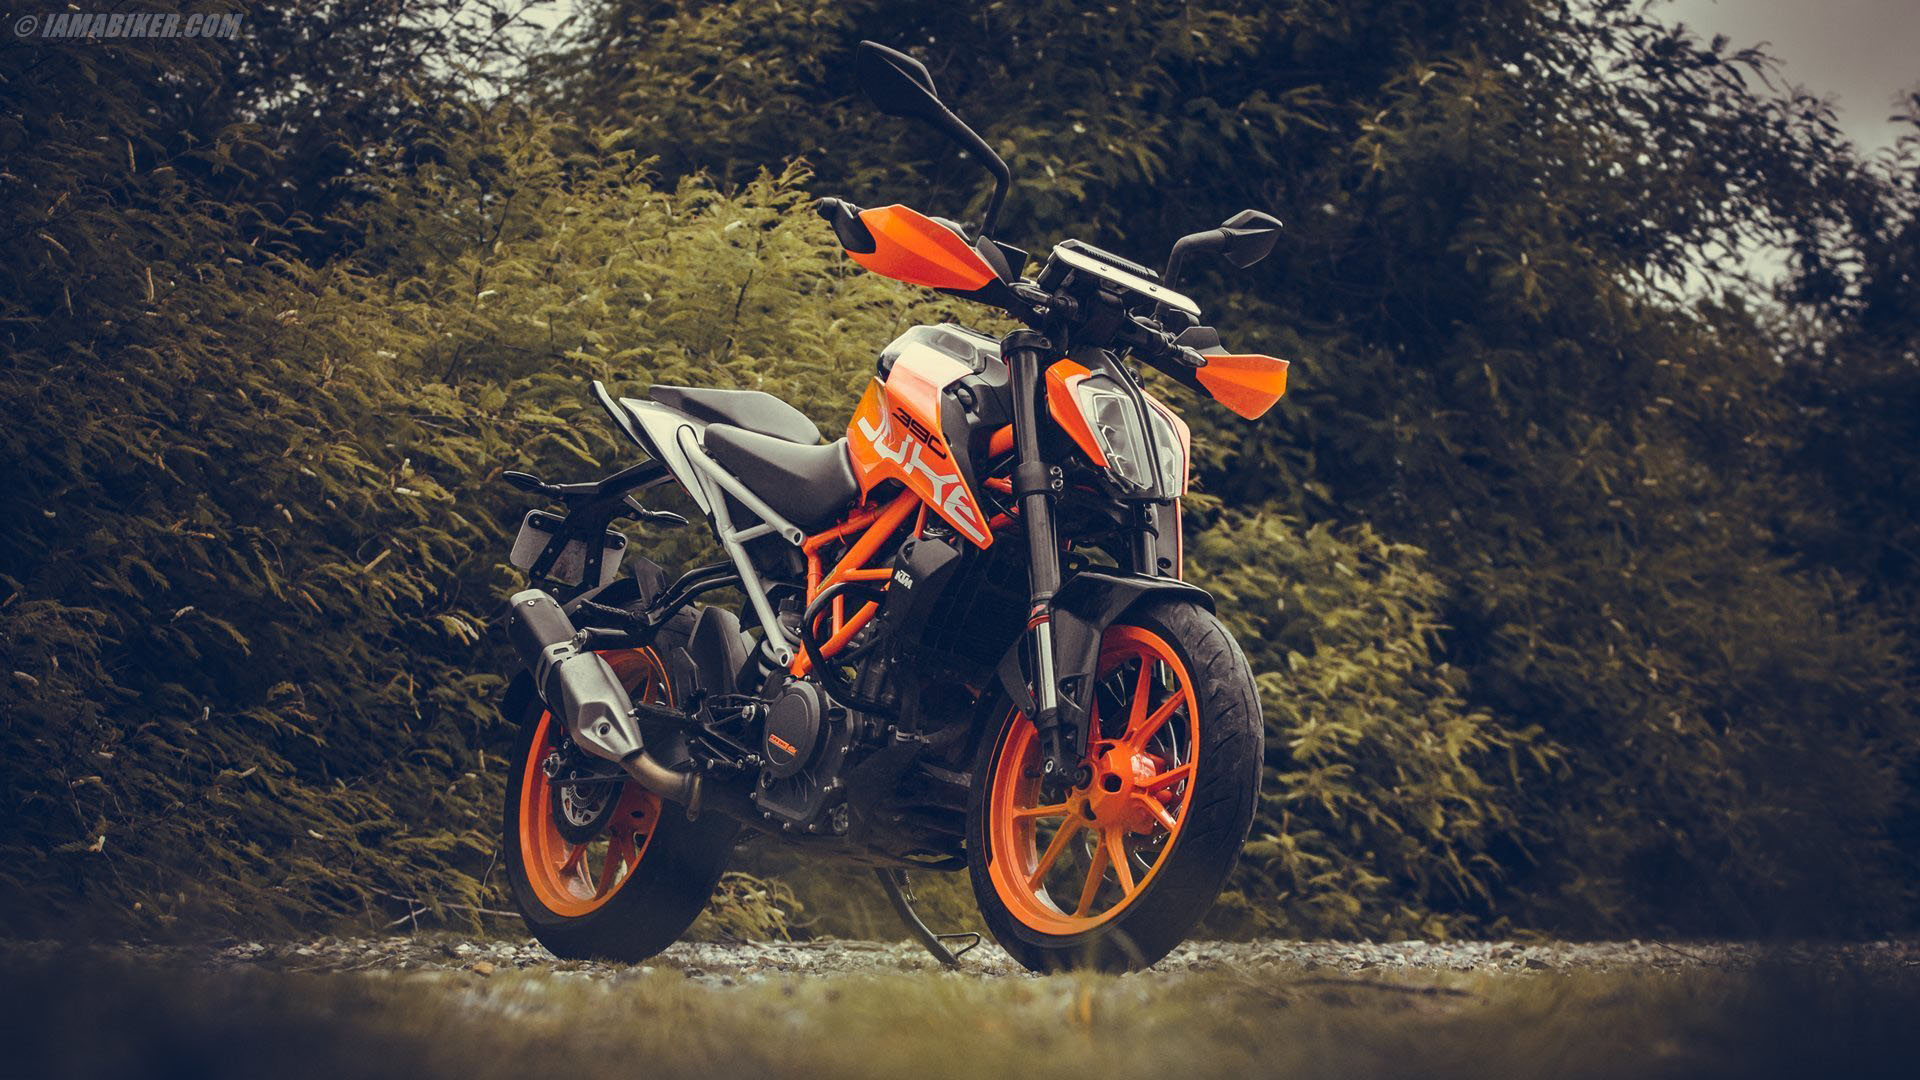 2017 ktm duke 390 hd wallpapers iamabiker. Black Bedroom Furniture Sets. Home Design Ideas